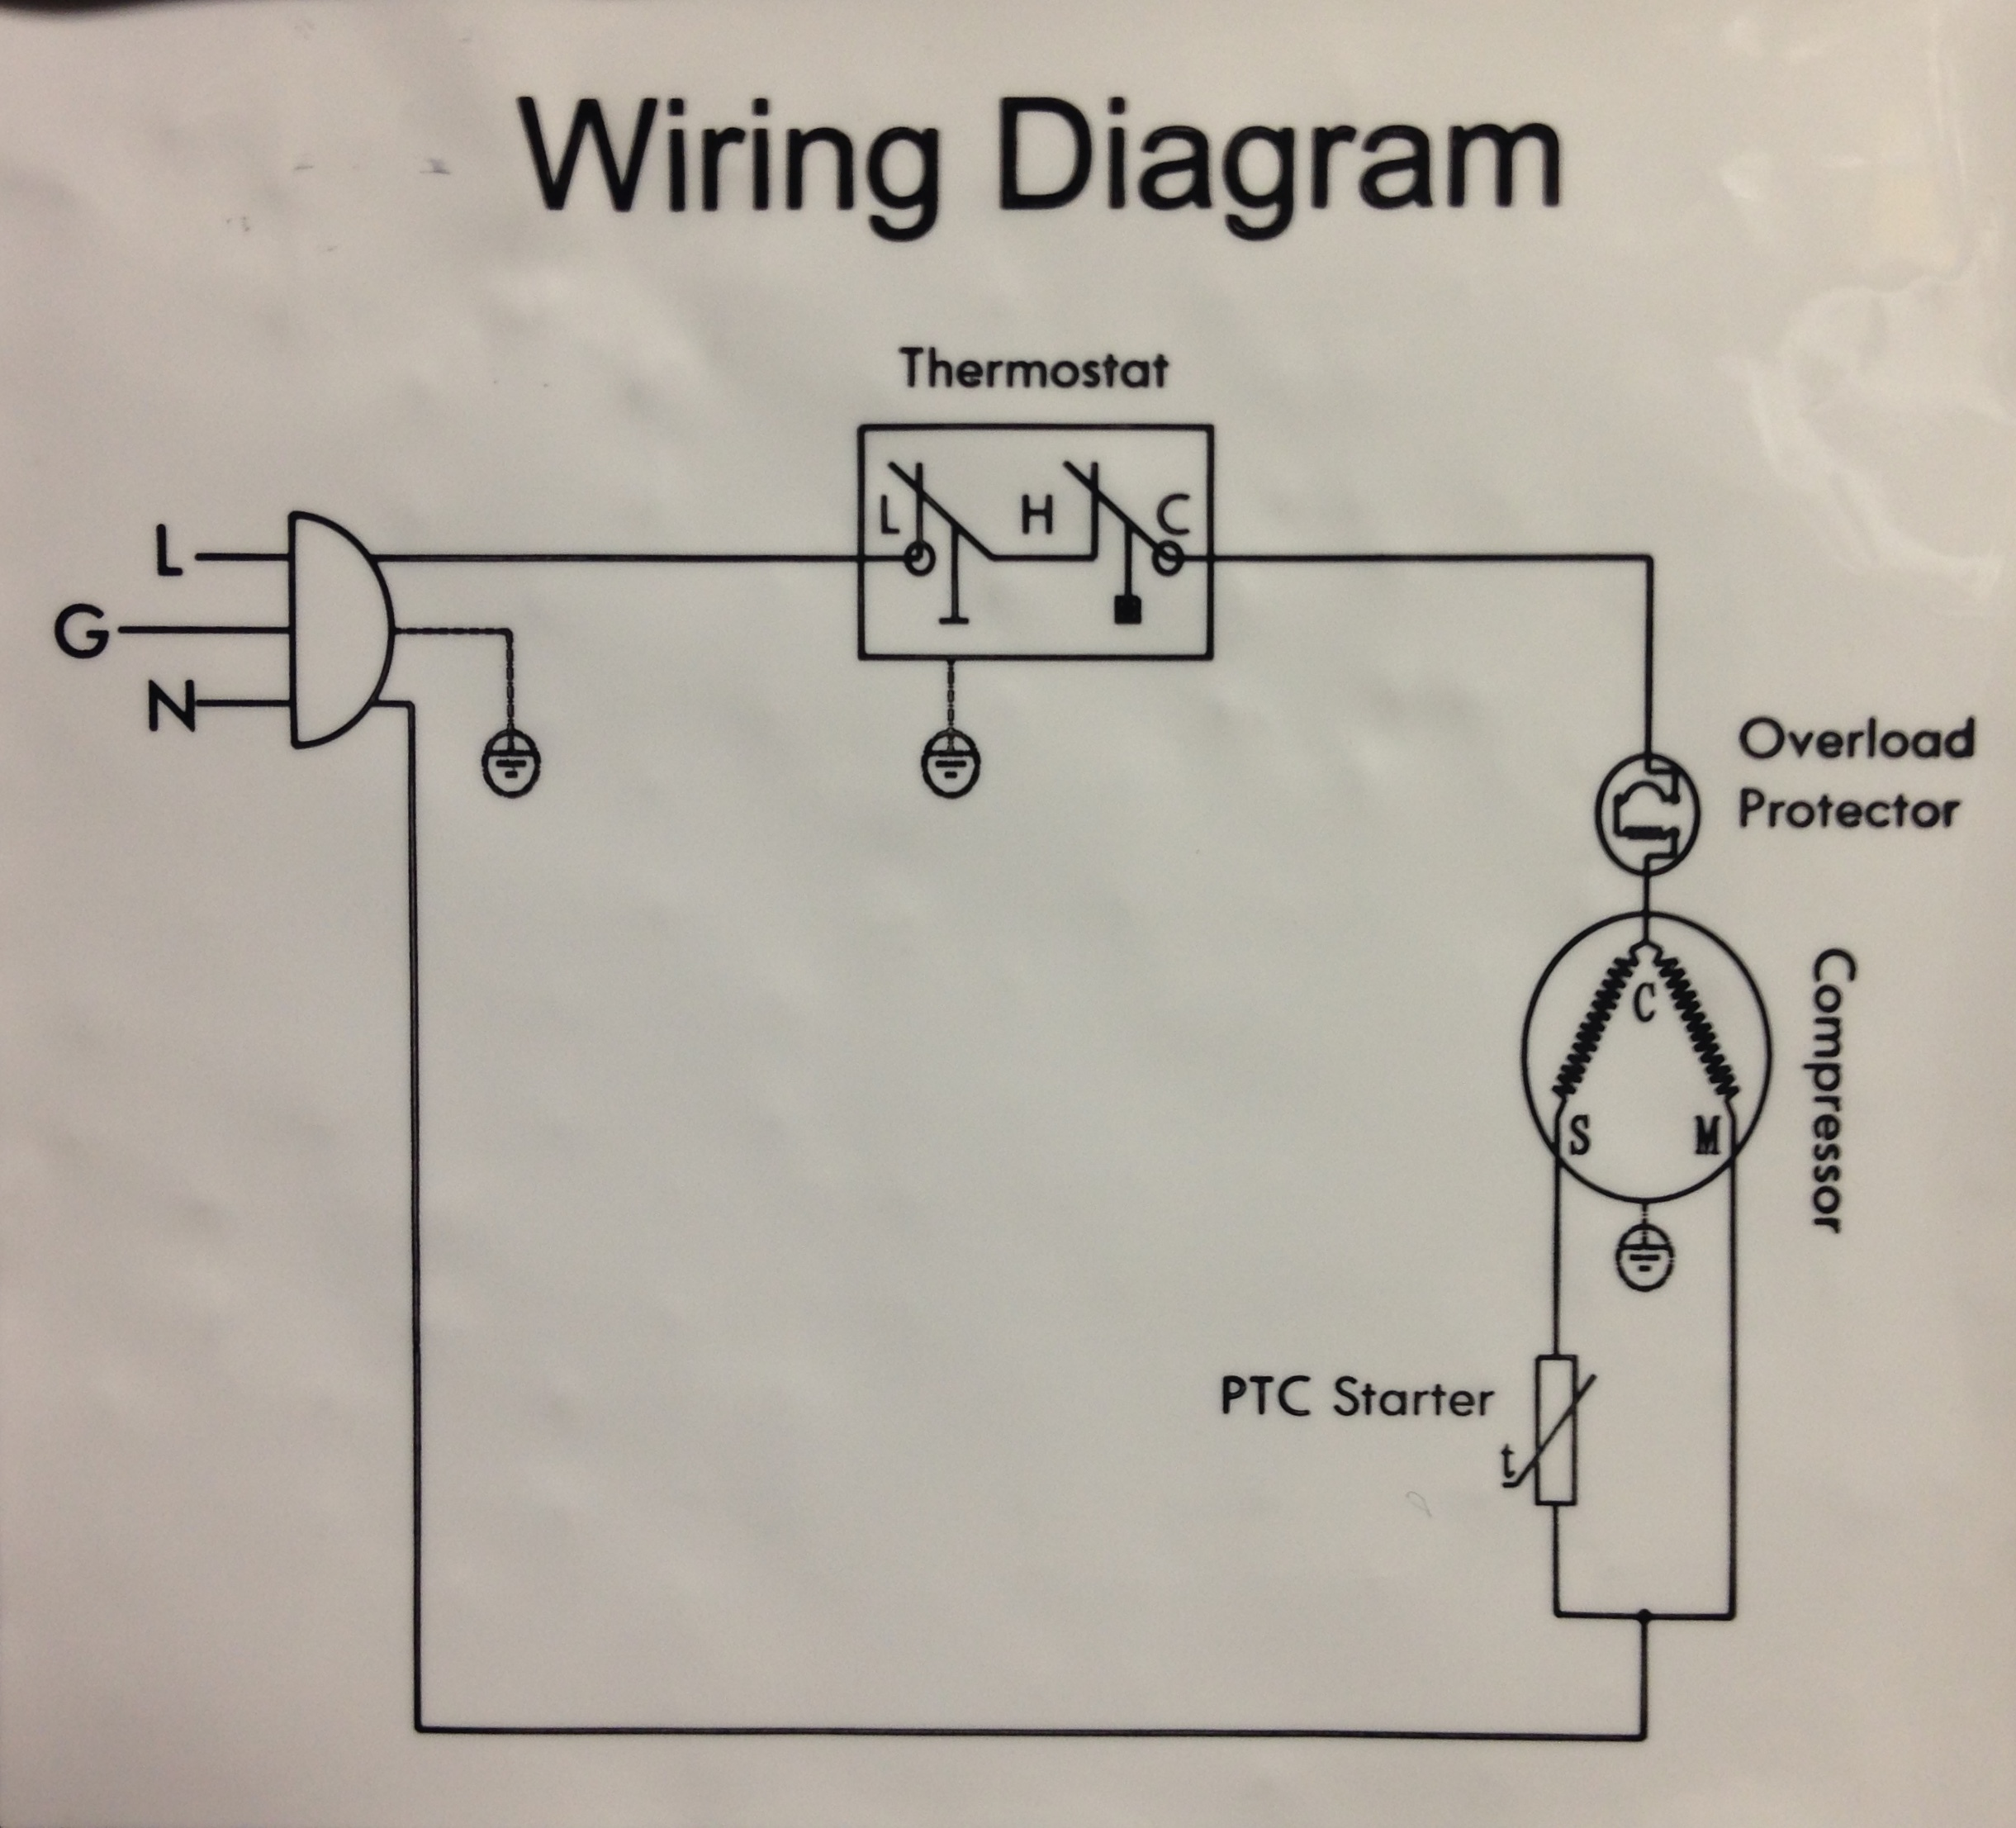 refrigerator wire diagram refrigerator thermostat wiring diagram refrigerator wiring description image b below you can see the wall black